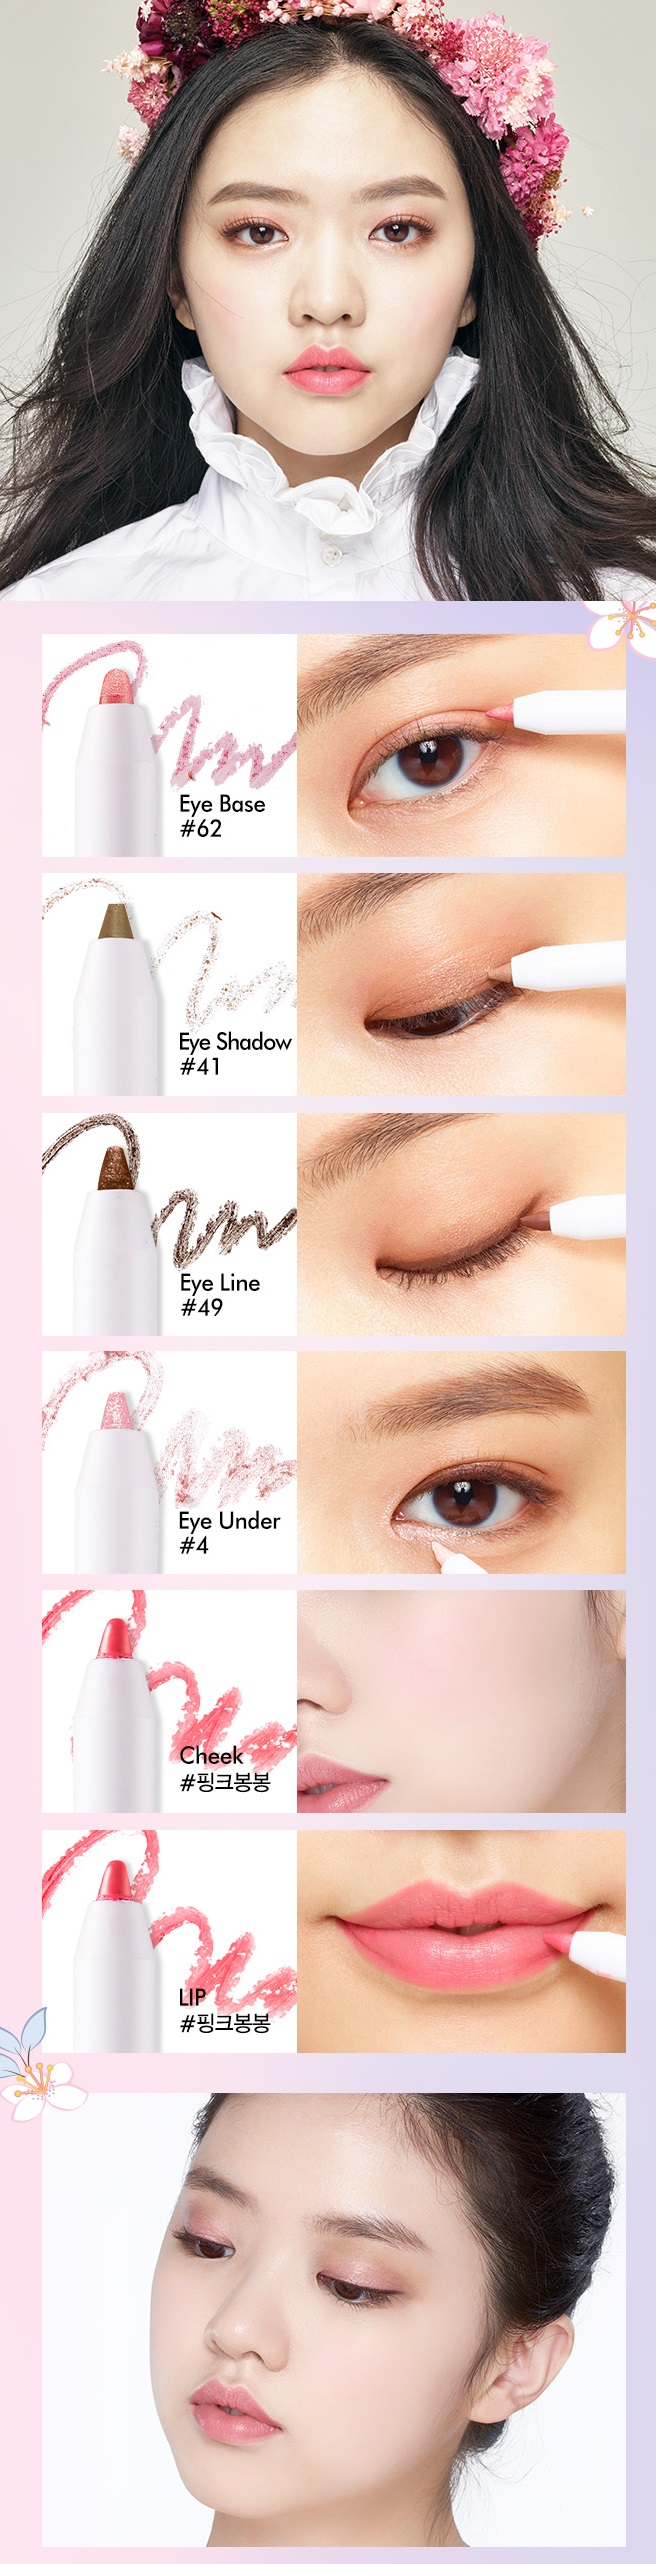 Etude House Pink Cherry Blossom Play 101 Pencil 5 Colors